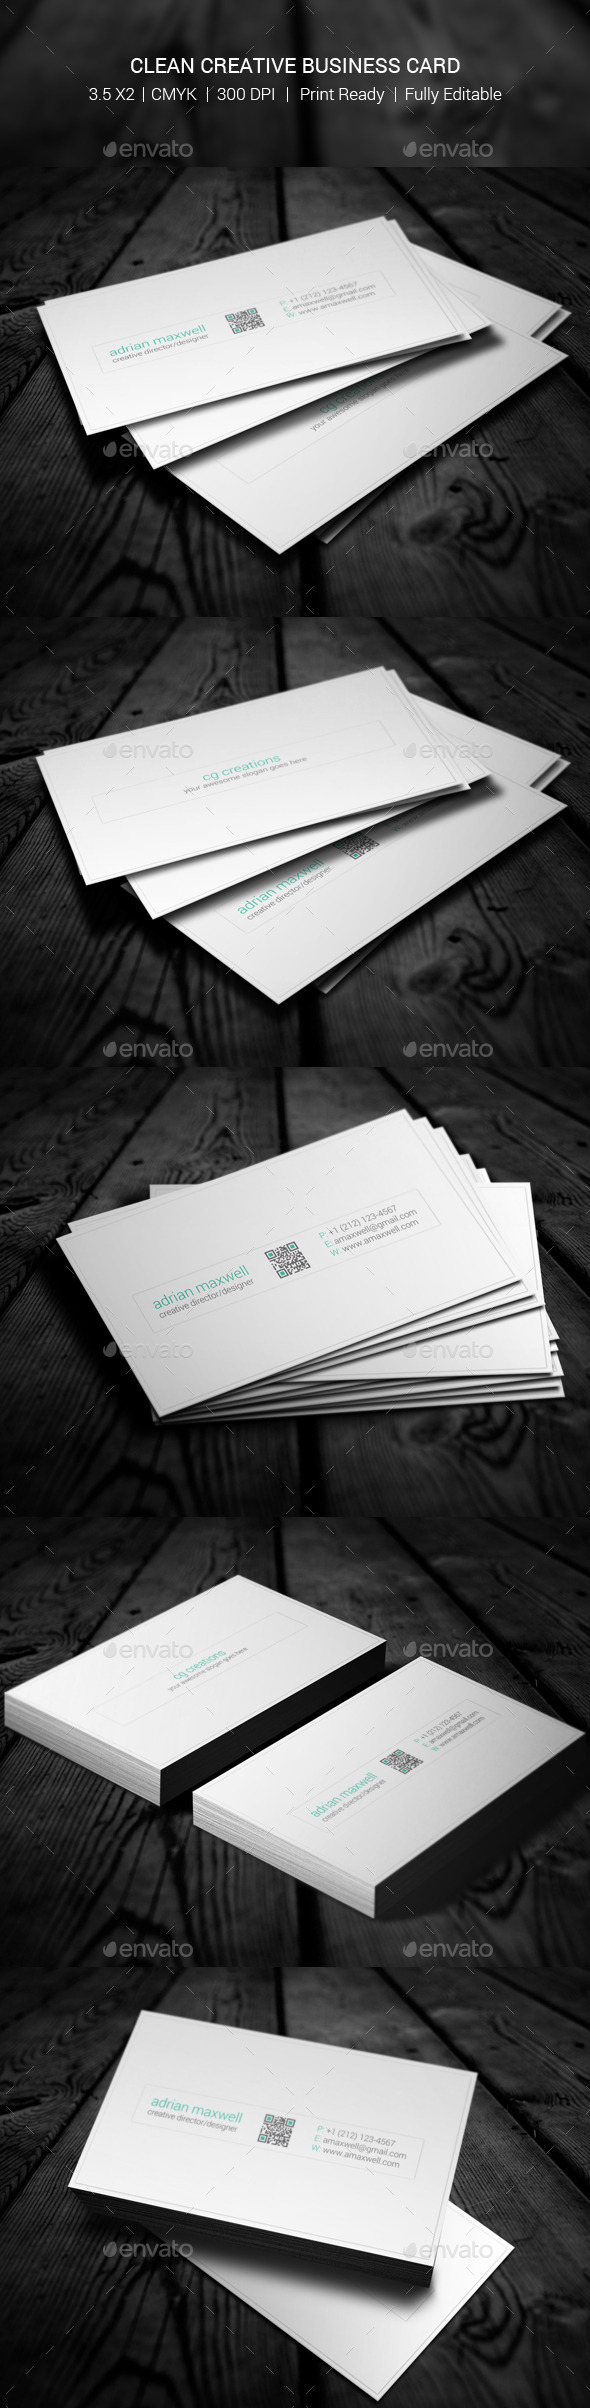 GraphicRiver Clean Creative Business Card 10955632